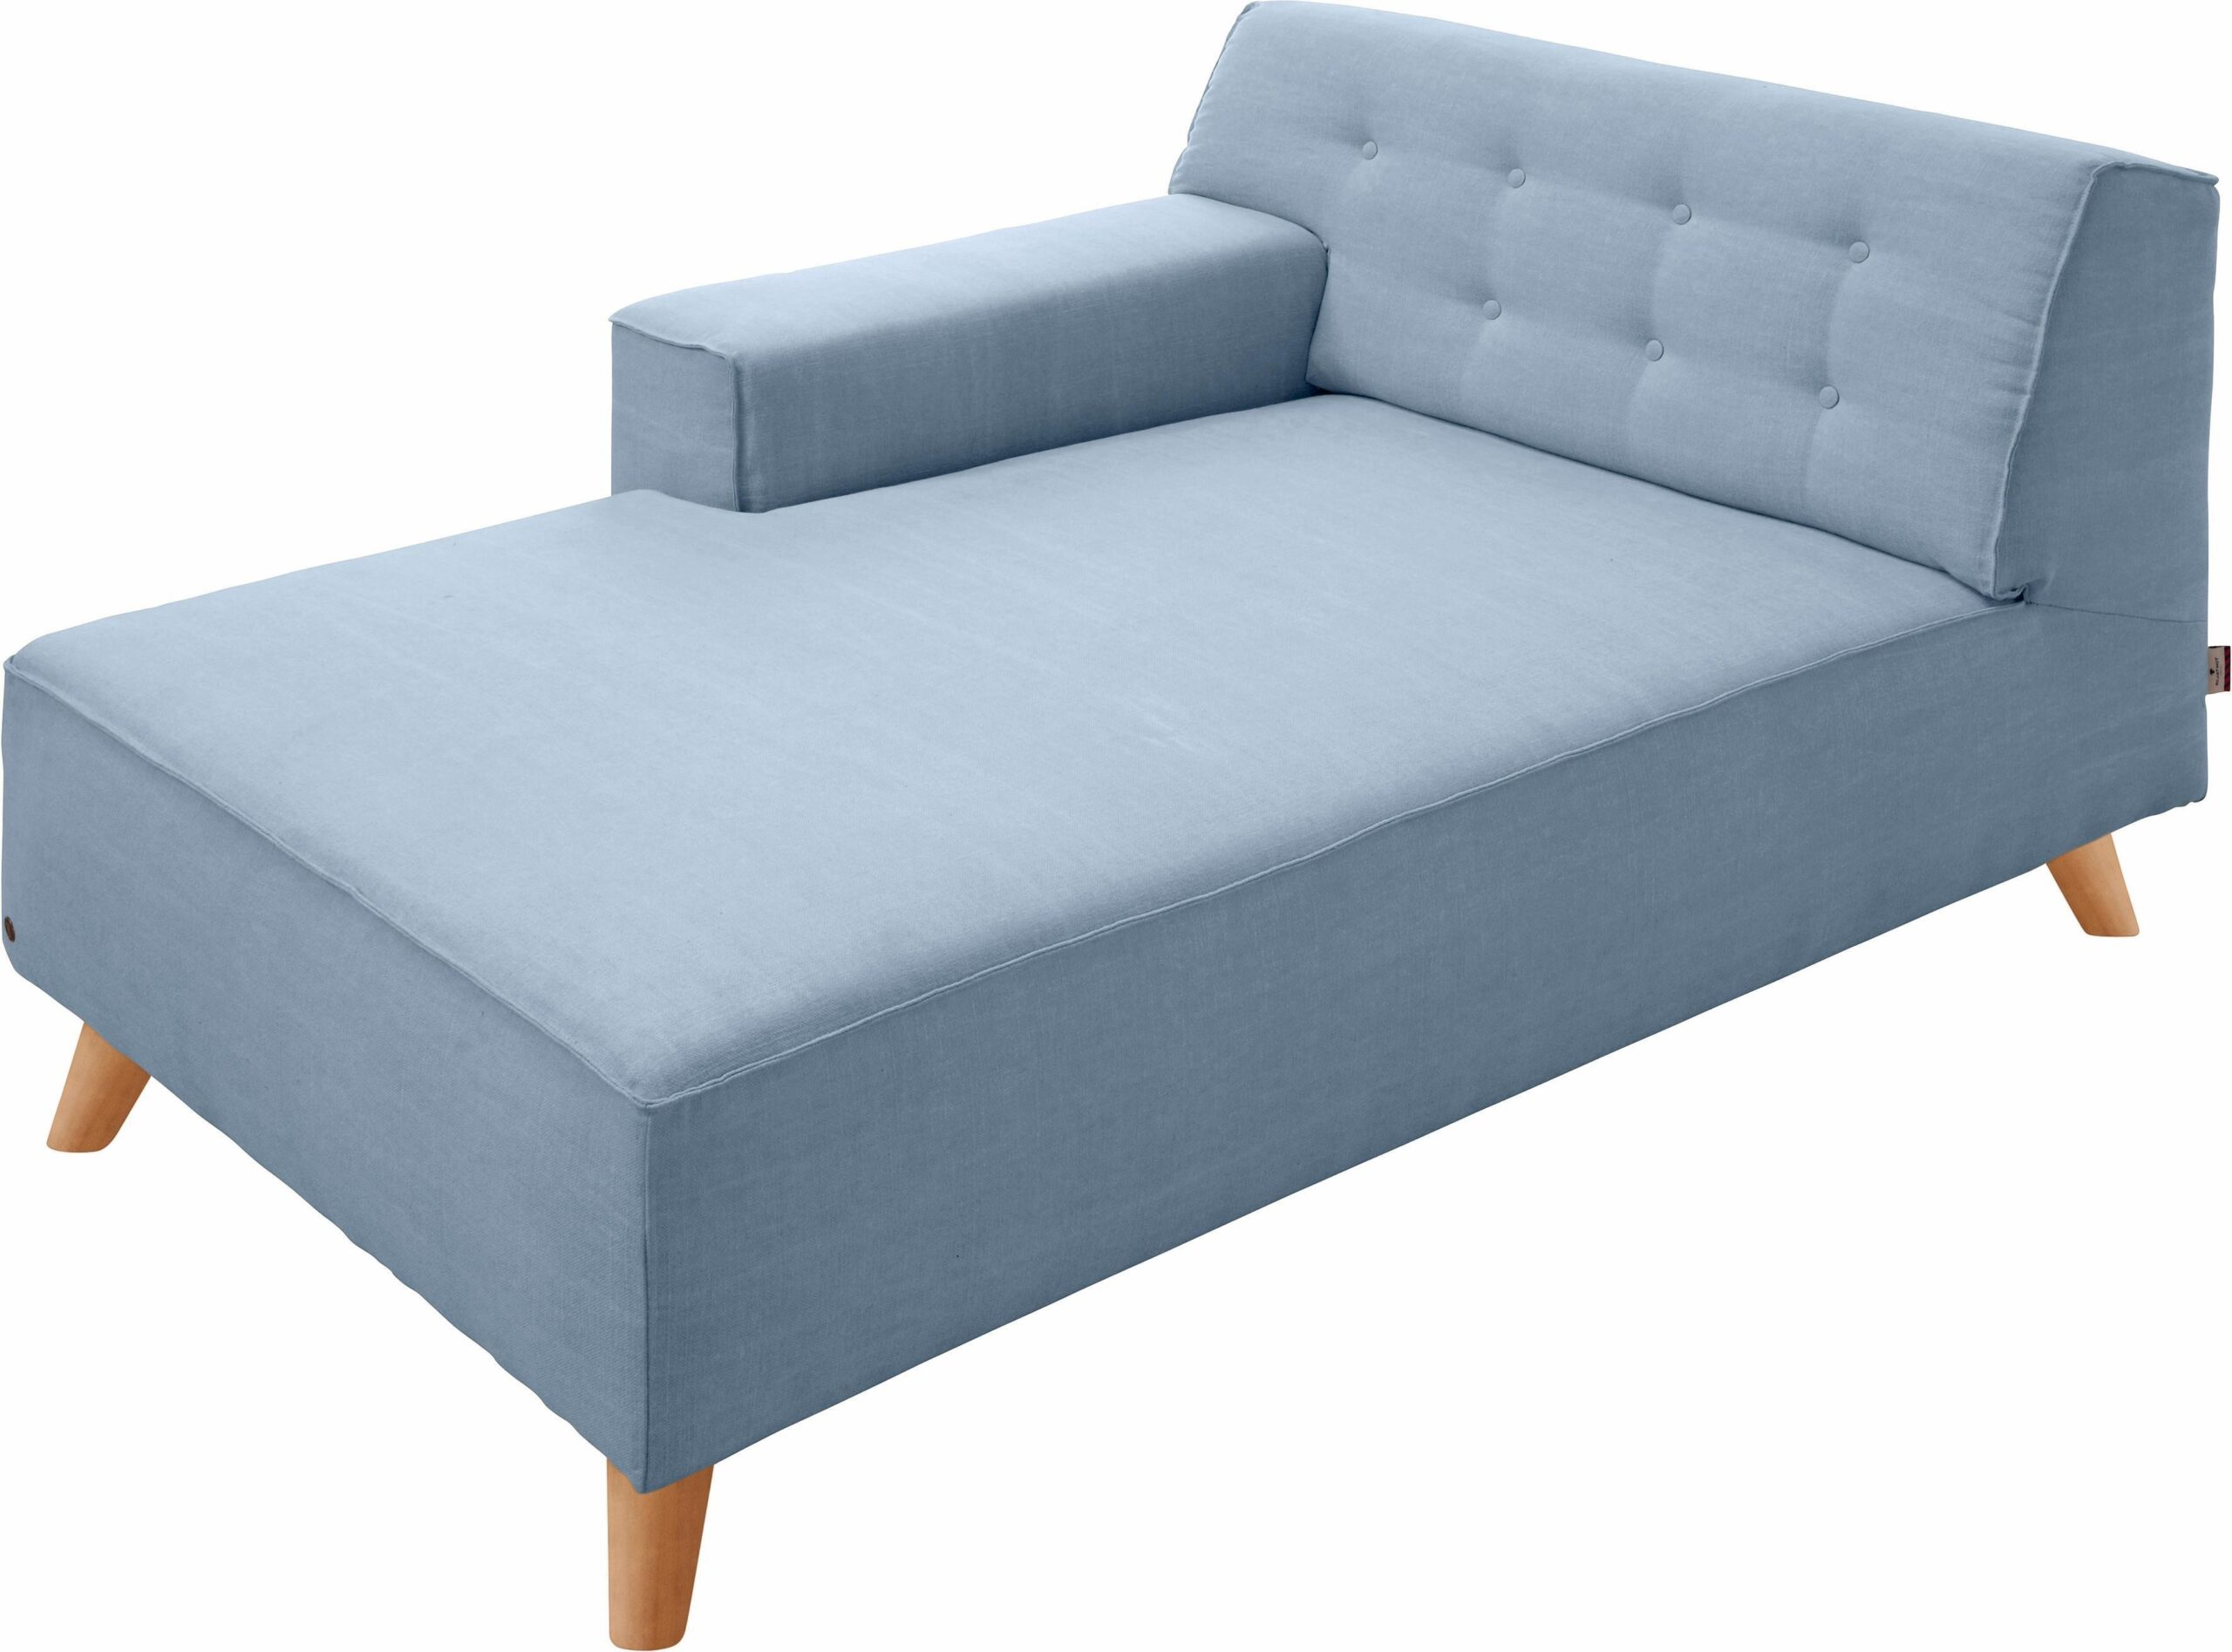 Full Size of Tom Tailor Sofa Heaven Chic Nordic Pure Big Cube Style Xl Couch Casual Stressless Stoff Grau Alcantara Kolonialstil Mit Hocker Poco Halbrund Inhofer Megapol Sofa Tom Tailor Sofa